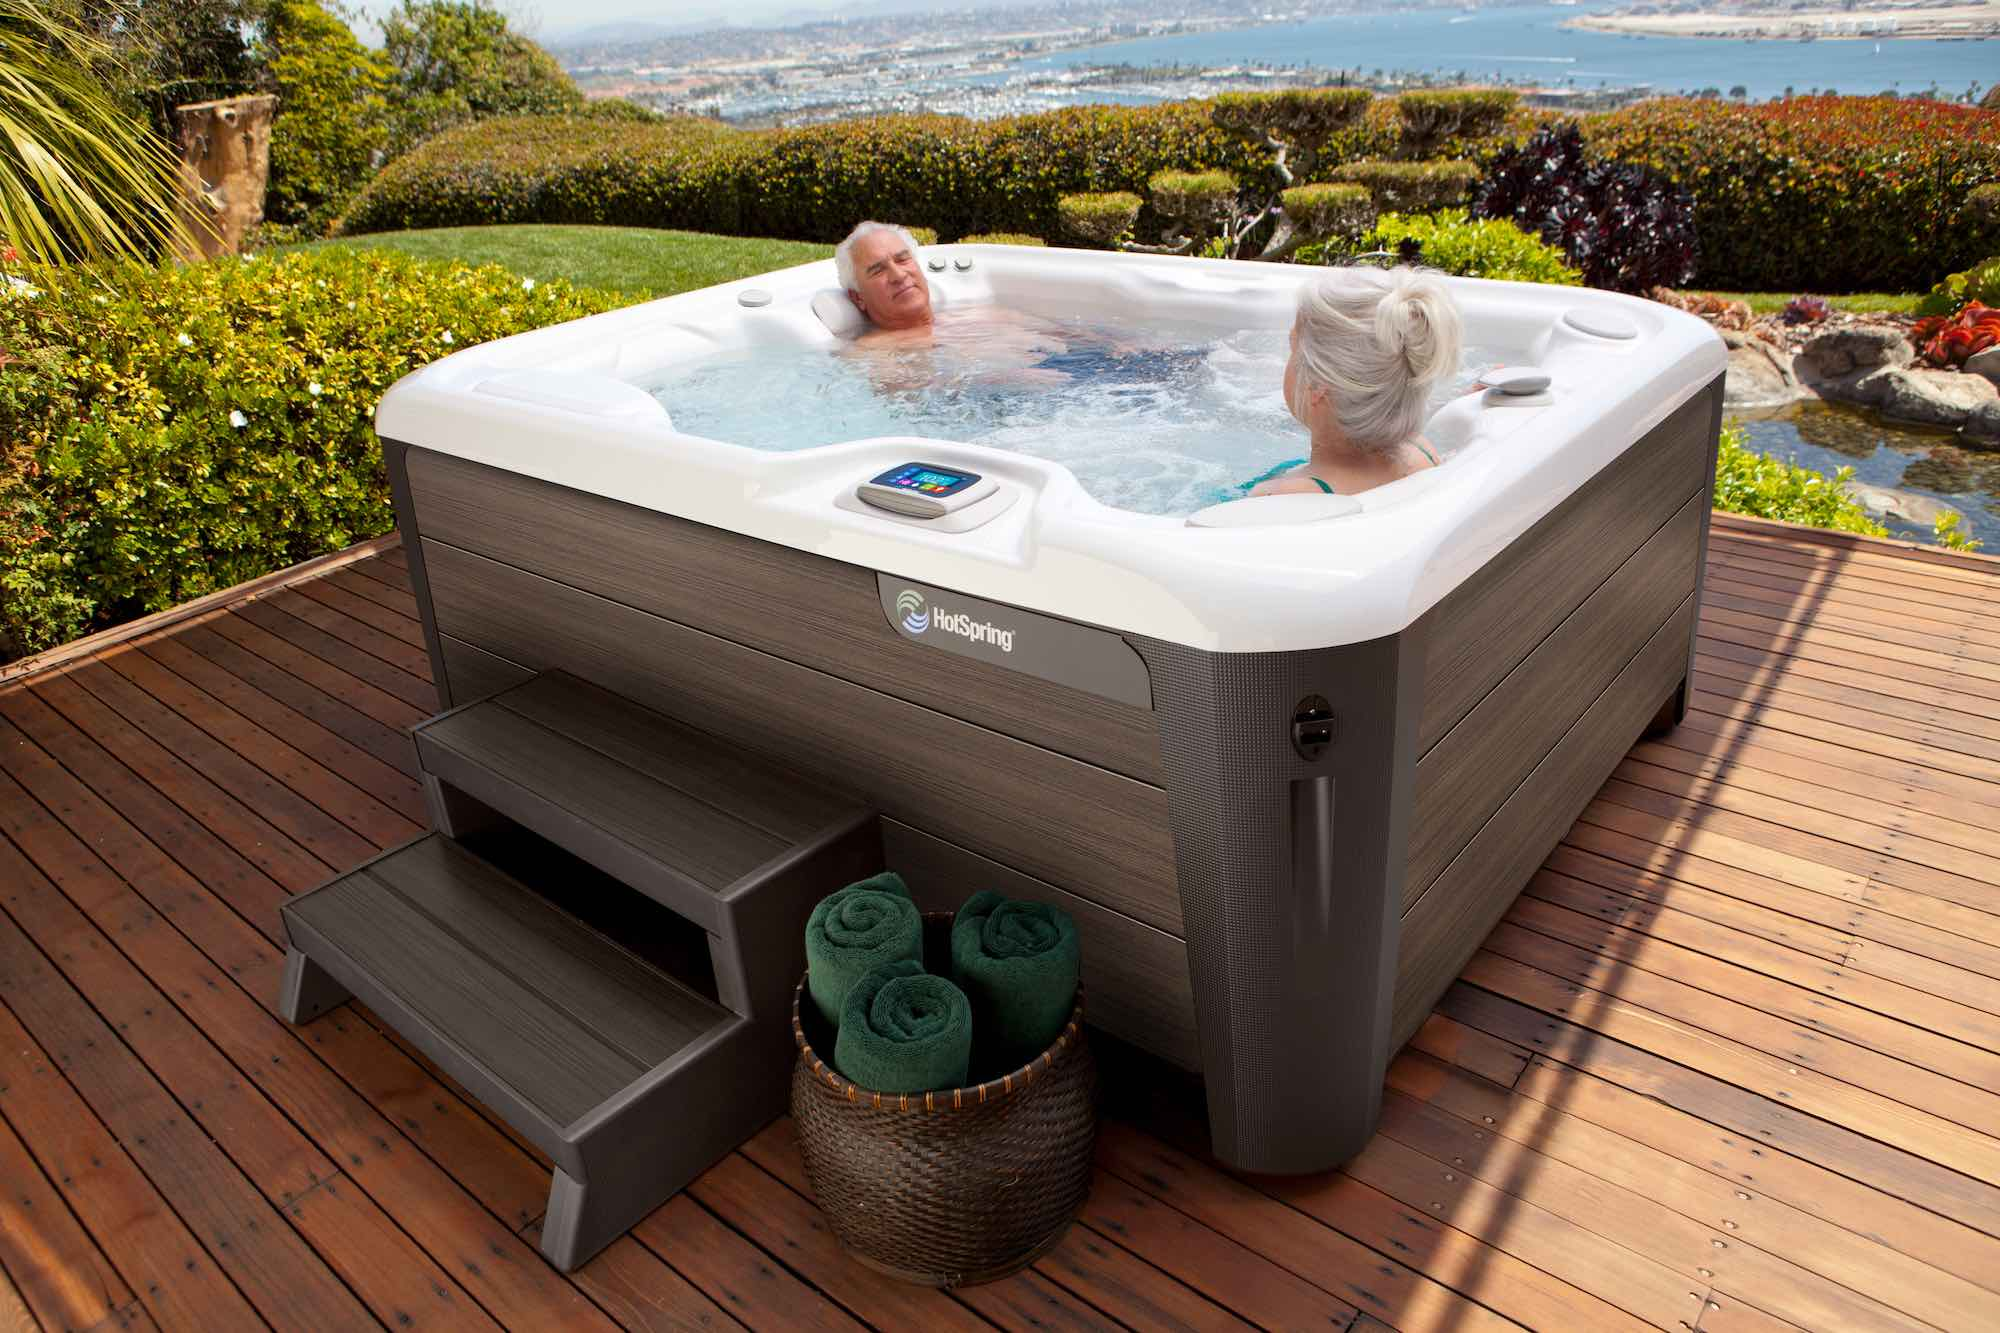 Hot Spring Spas Jetsetter Hot Tub at Lifestyle Outdoor in Los Angeles, California